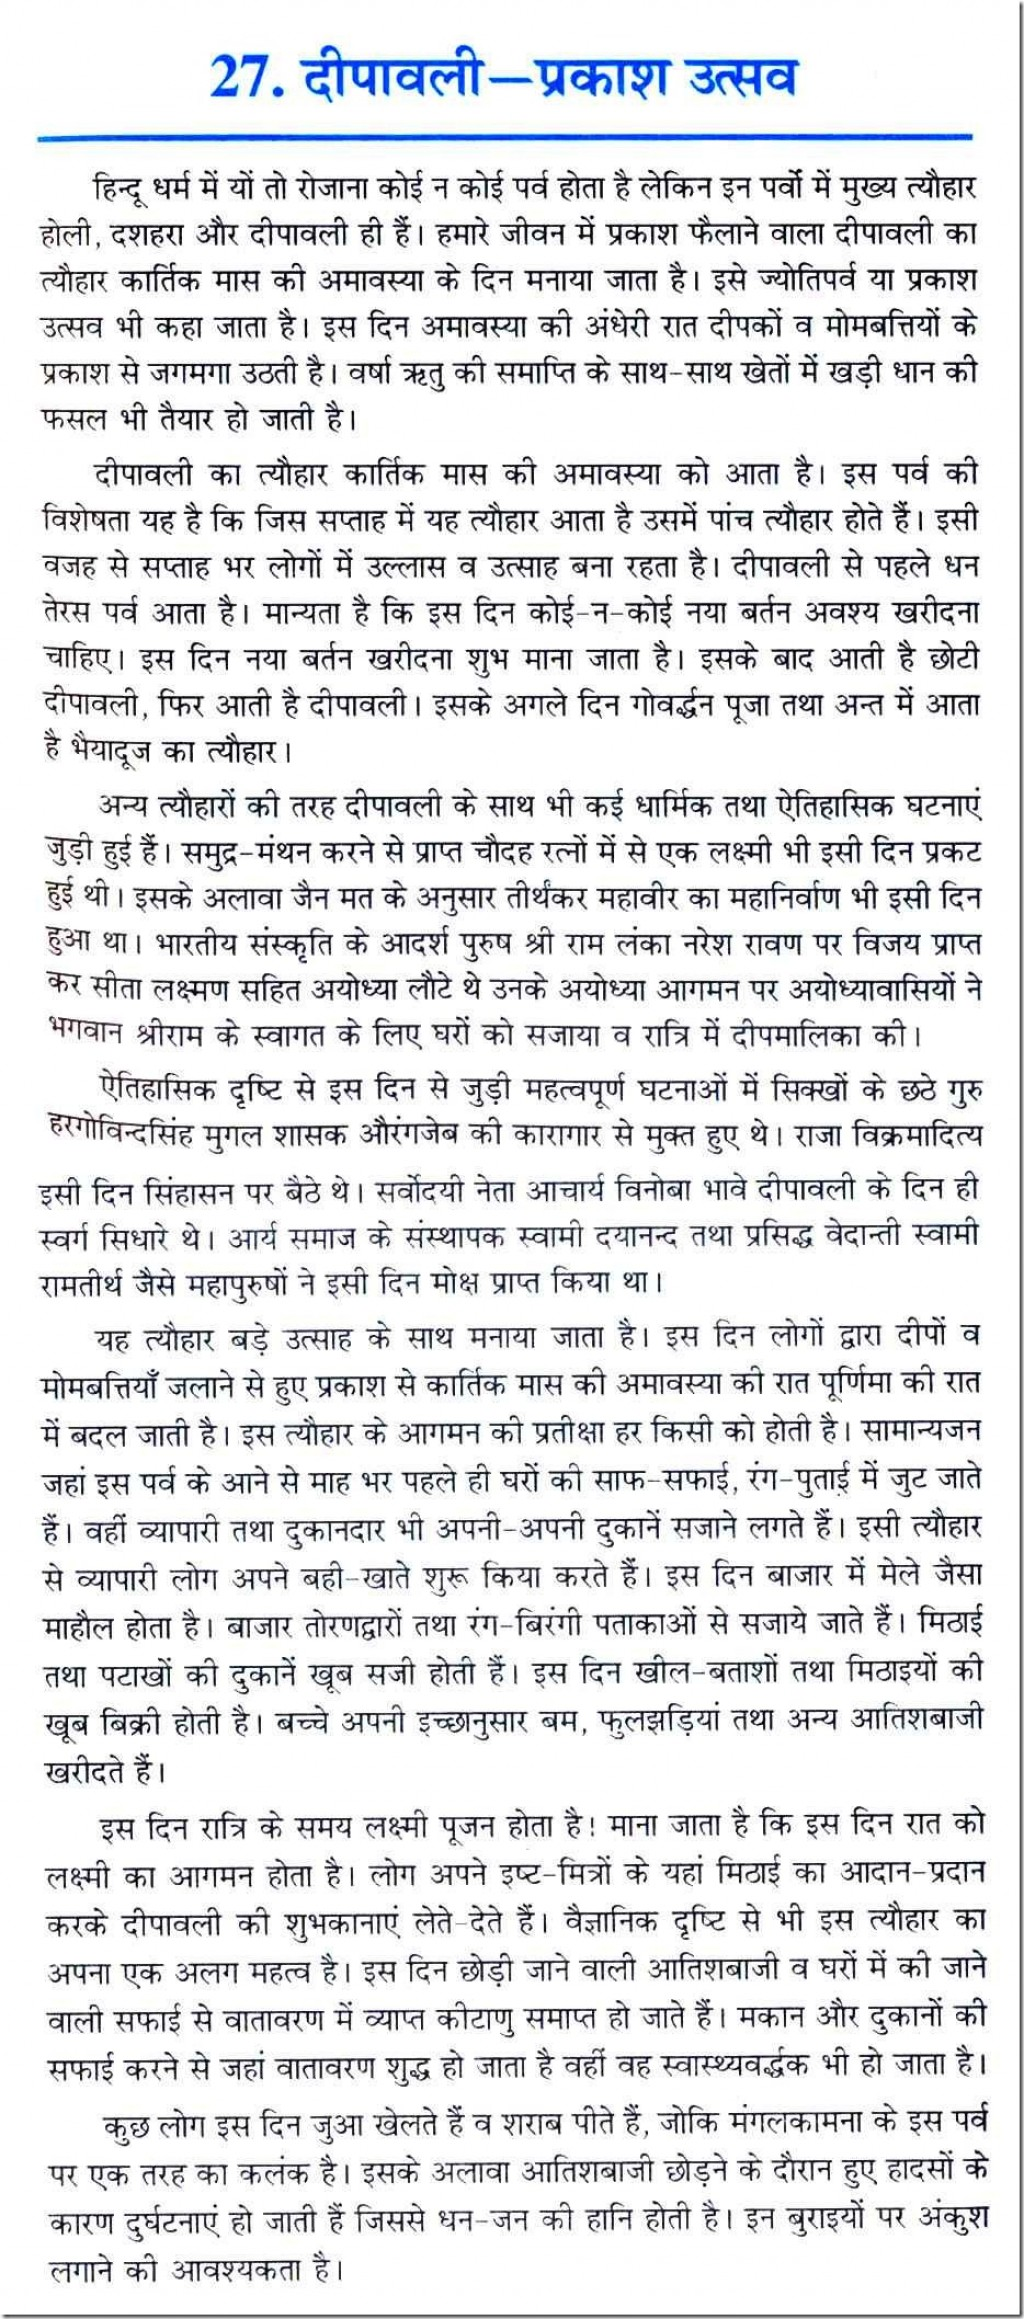 009 0020027 Thumb Essay Example For Diwali In Fantastic Hindi On 50 Words Class Short 3 Large